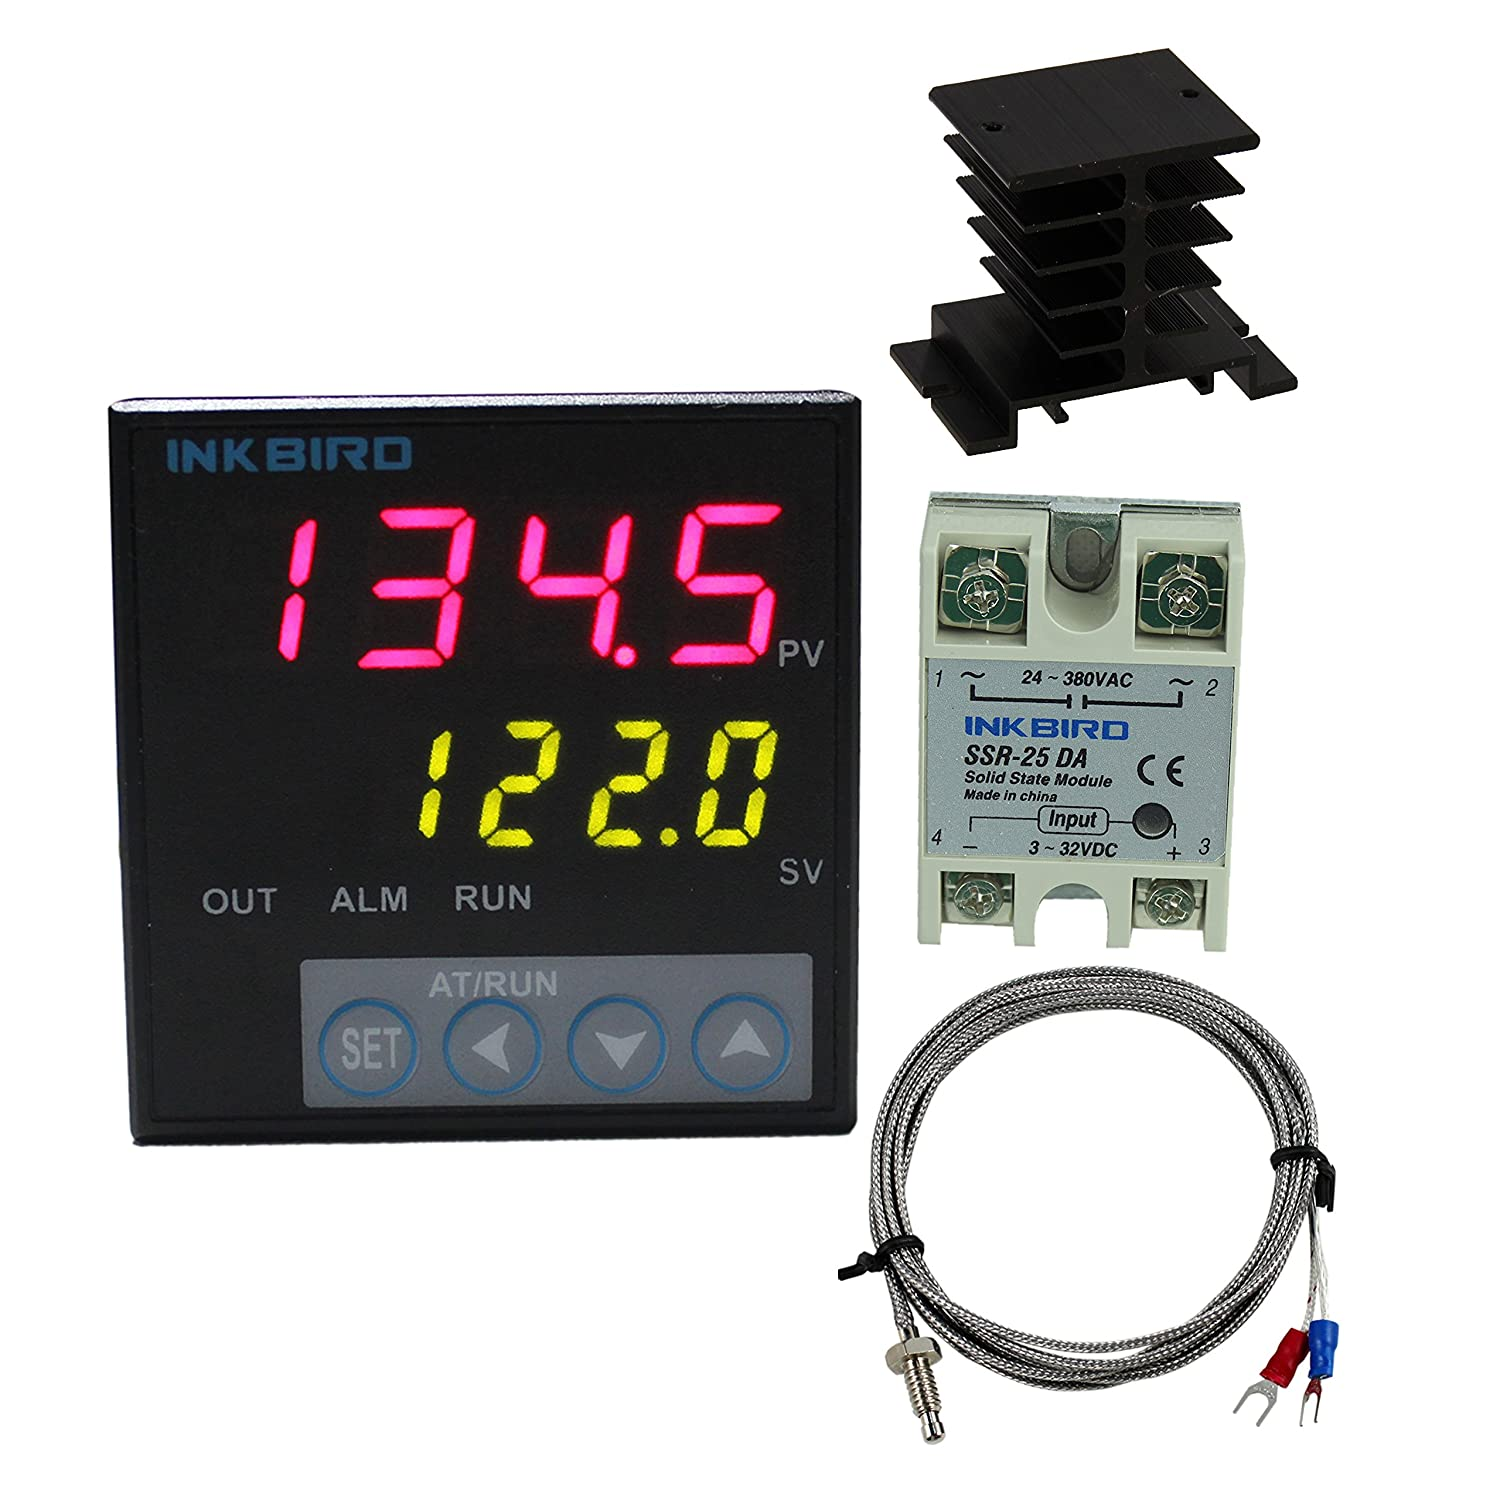 Inkbird F Display PID Temperature Controllers Thermostat Heat Sink and Solid State Relay 100 to 240ACV ITC-106VH 25DA SSR Black Heat Sink K Probe